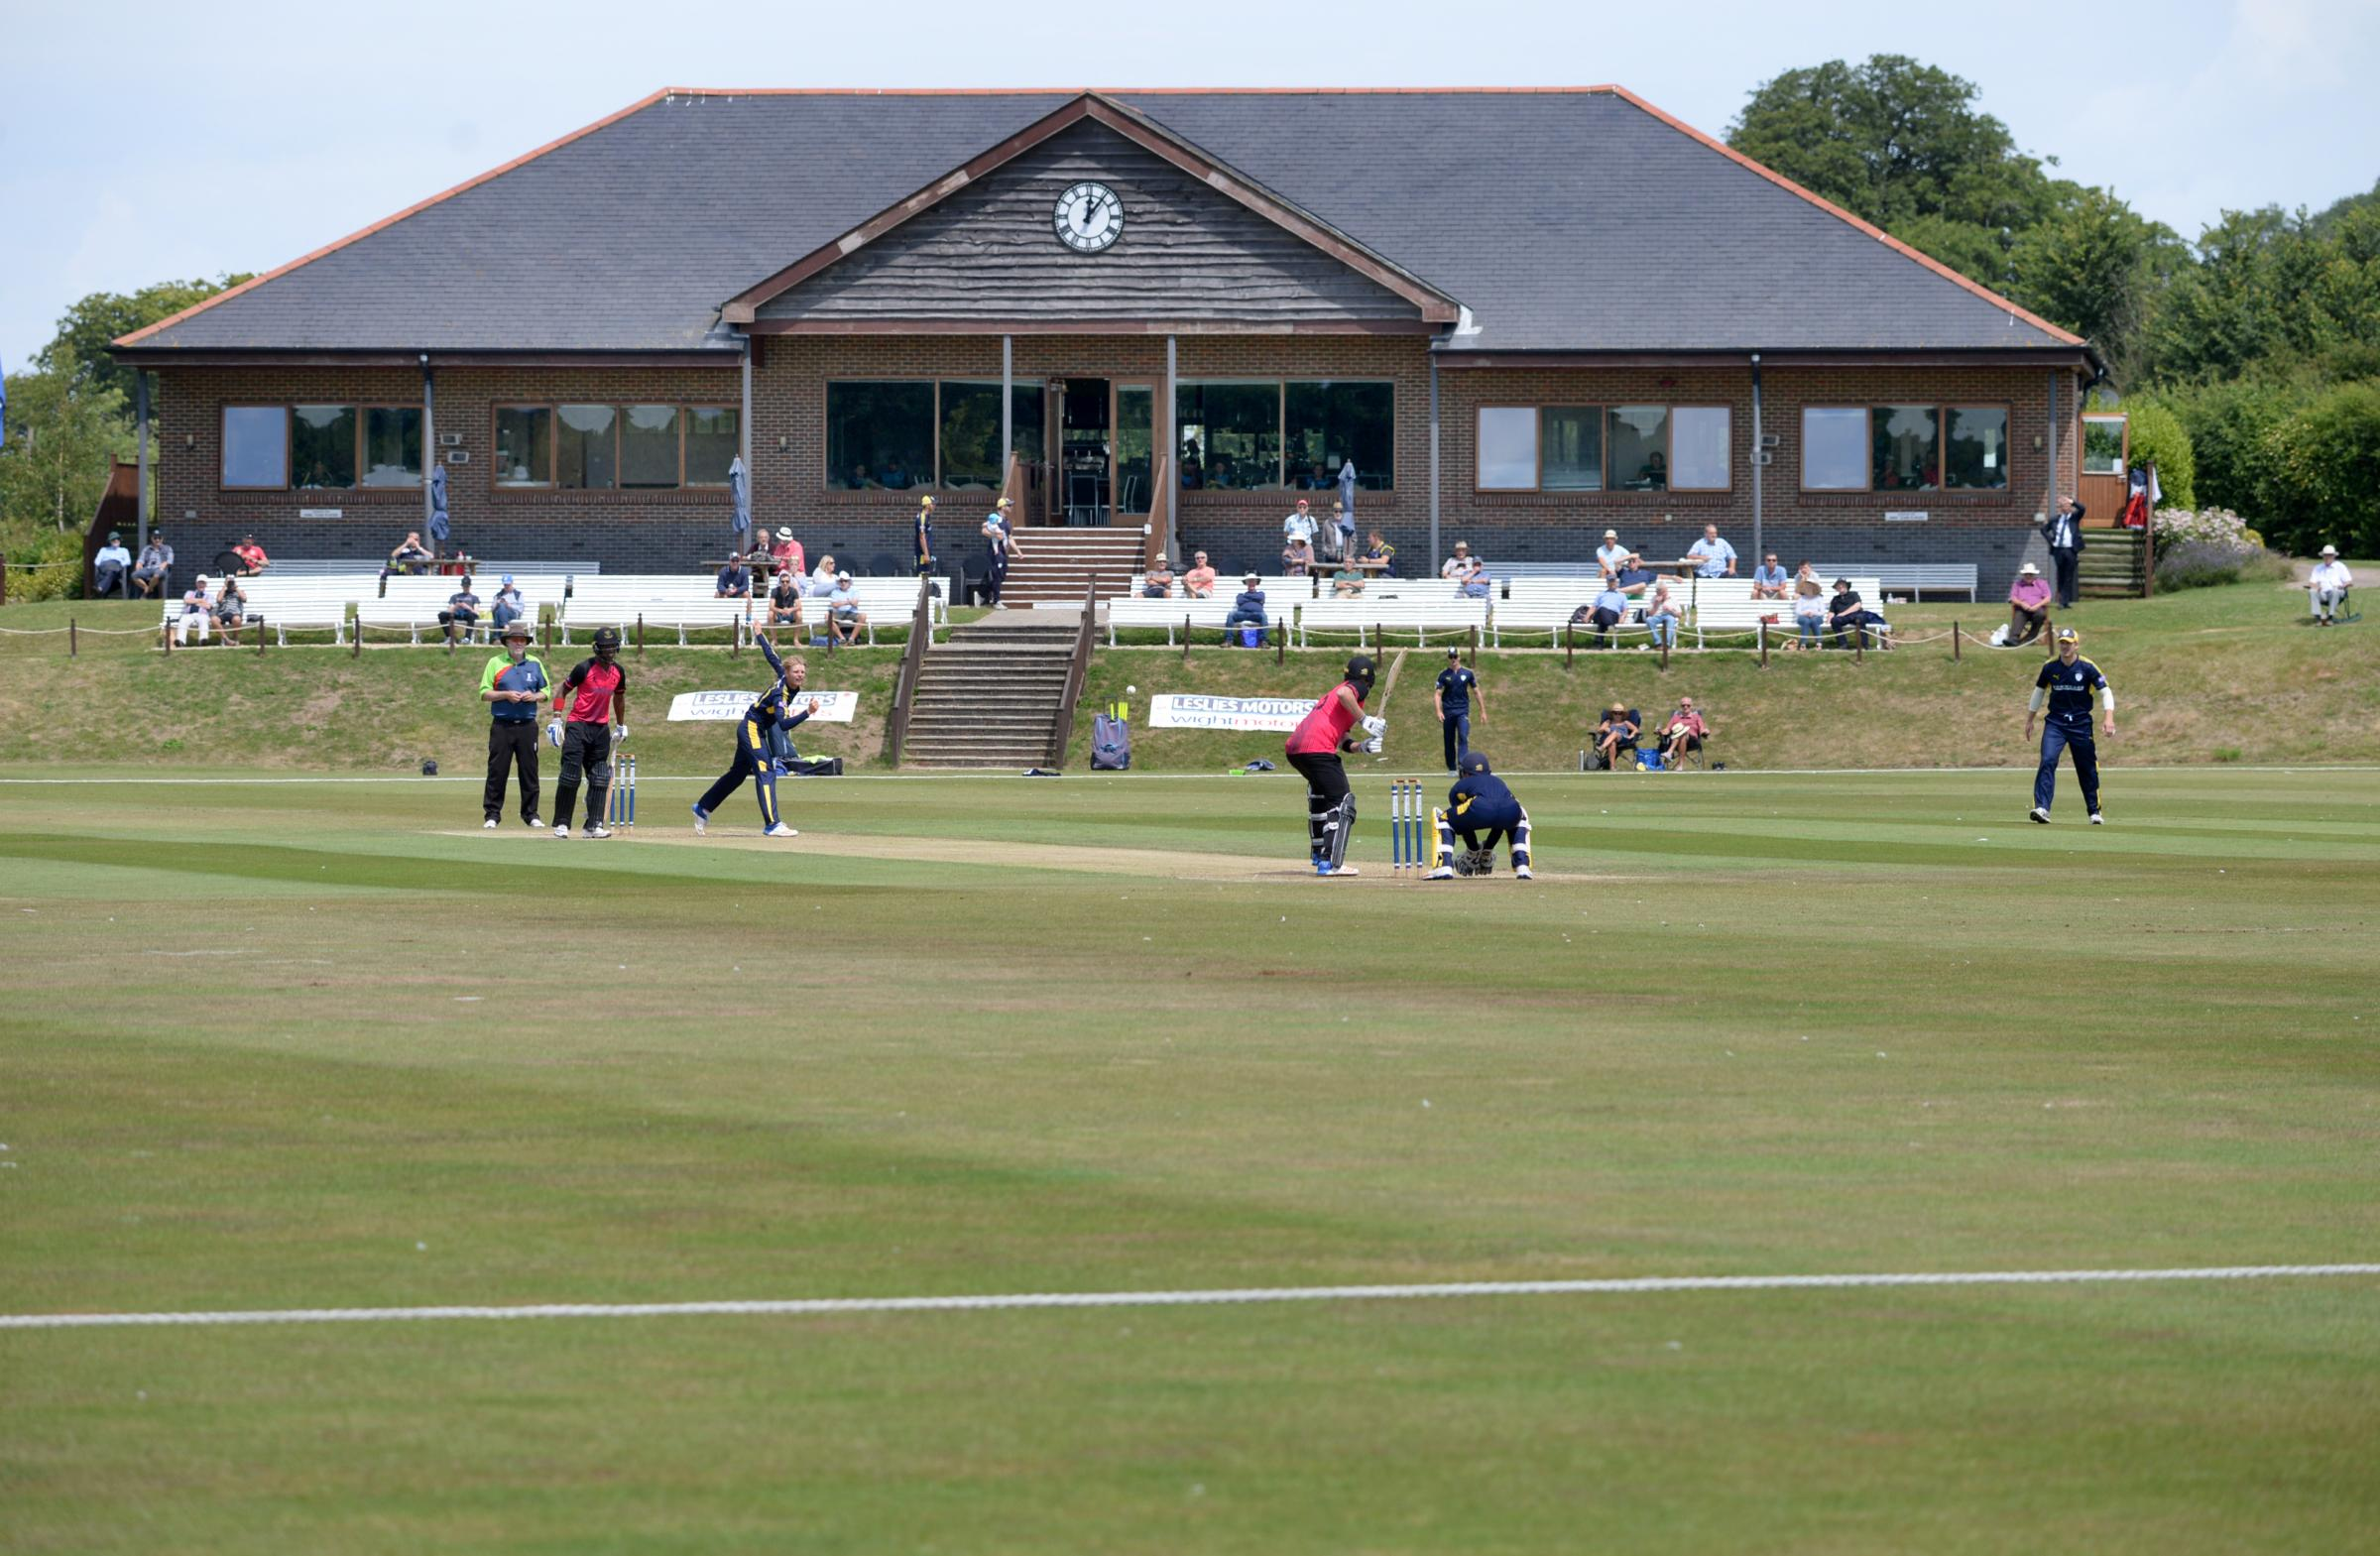 A Hampshire 2nds match against Sussex at Newclose last year